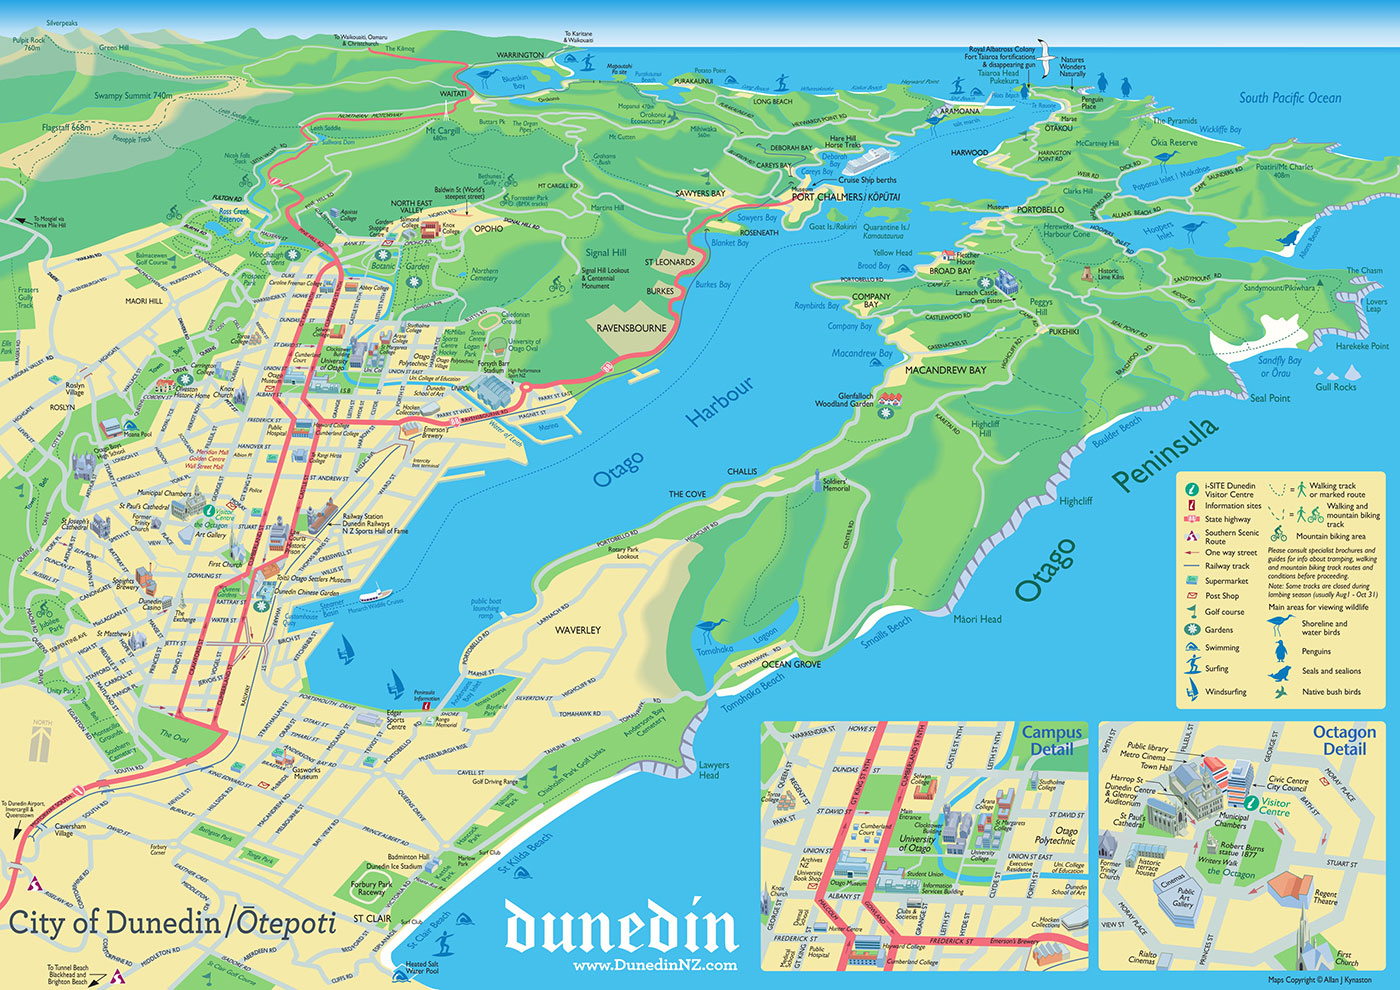 City of Dunedin map